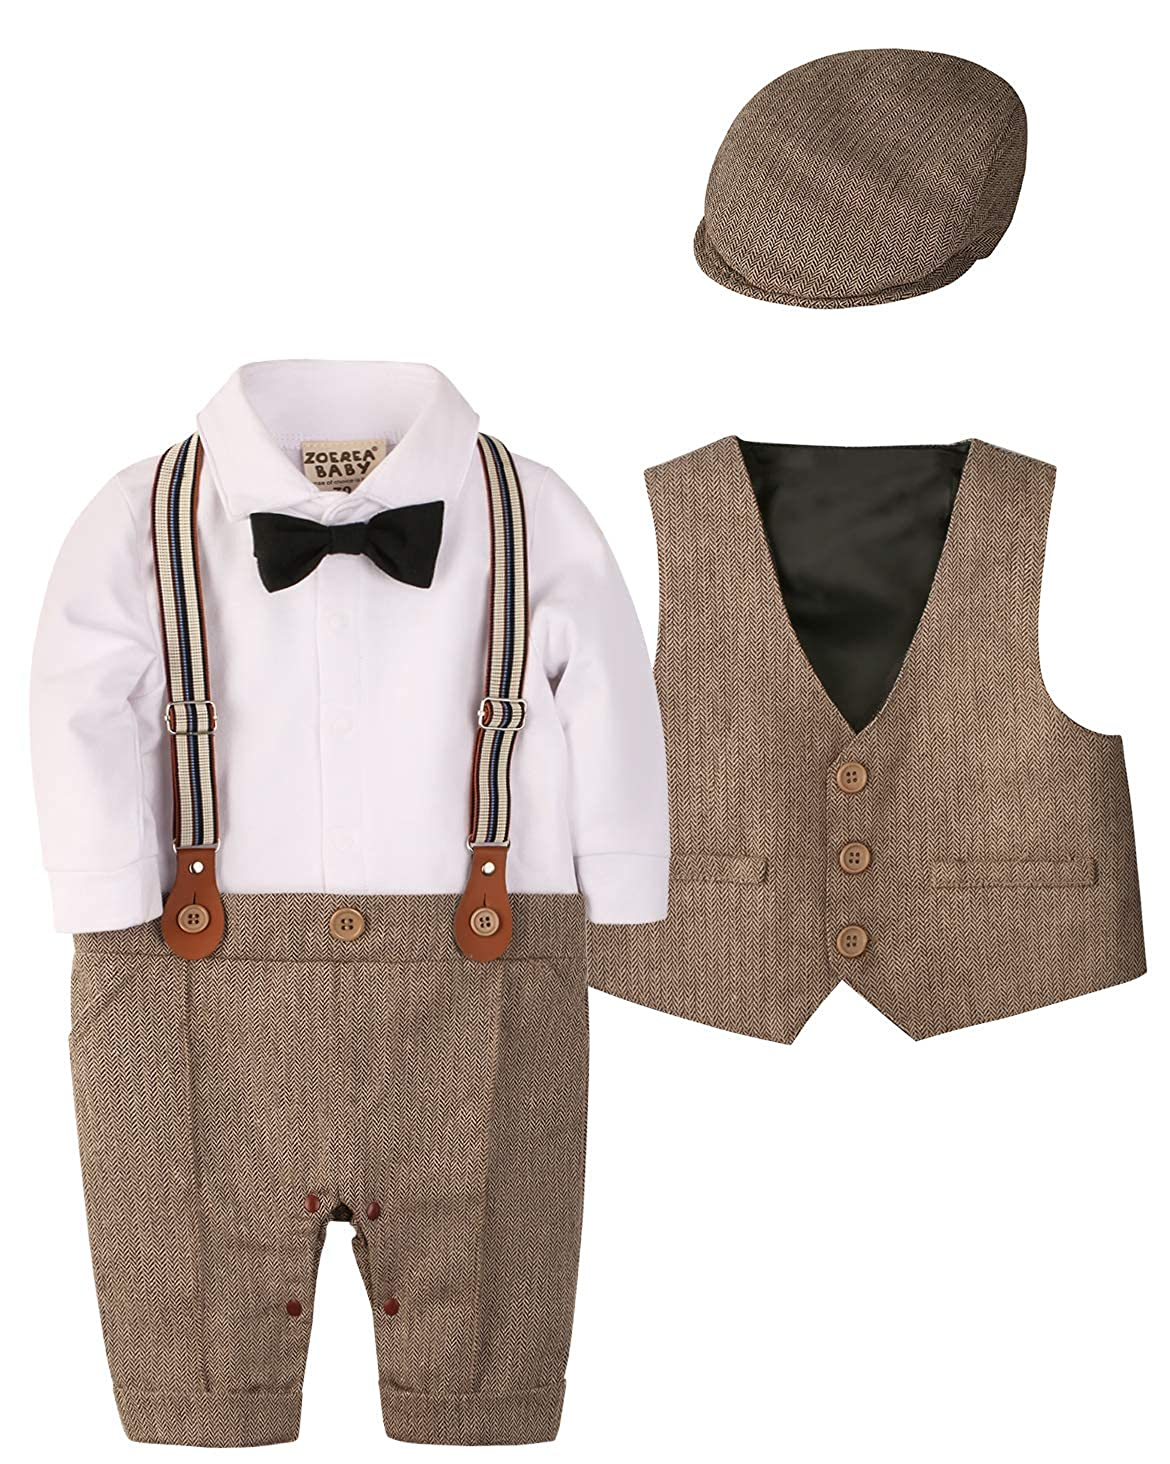 a02aa7ee1124 Amazon.com  ZOEREA 1pc Baby Boys Tuxedo Gentleman Onesie Romper ...